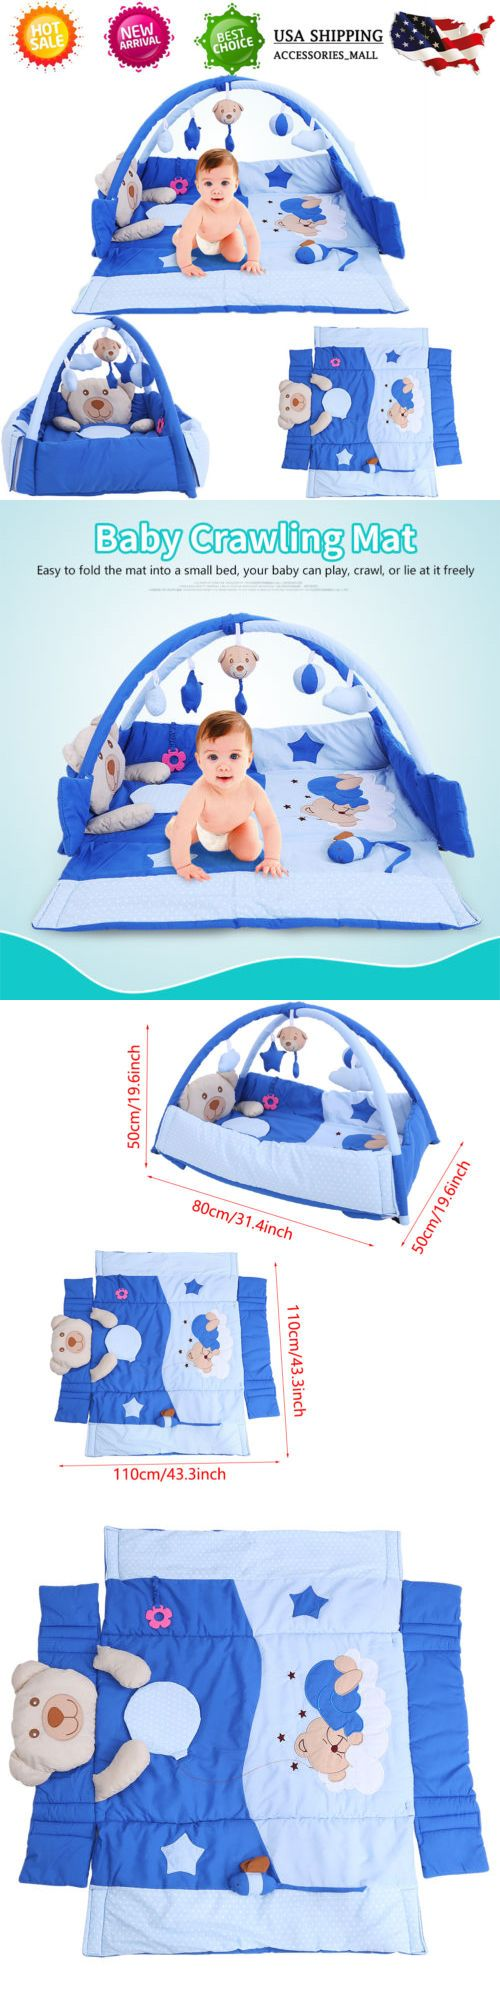 Baby Gyms and Play Mats 19069: Soft Cotton Baby Kids Game Gym Activity Play Mat Crawling Blanket Floor New -> BUY IT NOW ONLY: $42.25 on eBay!